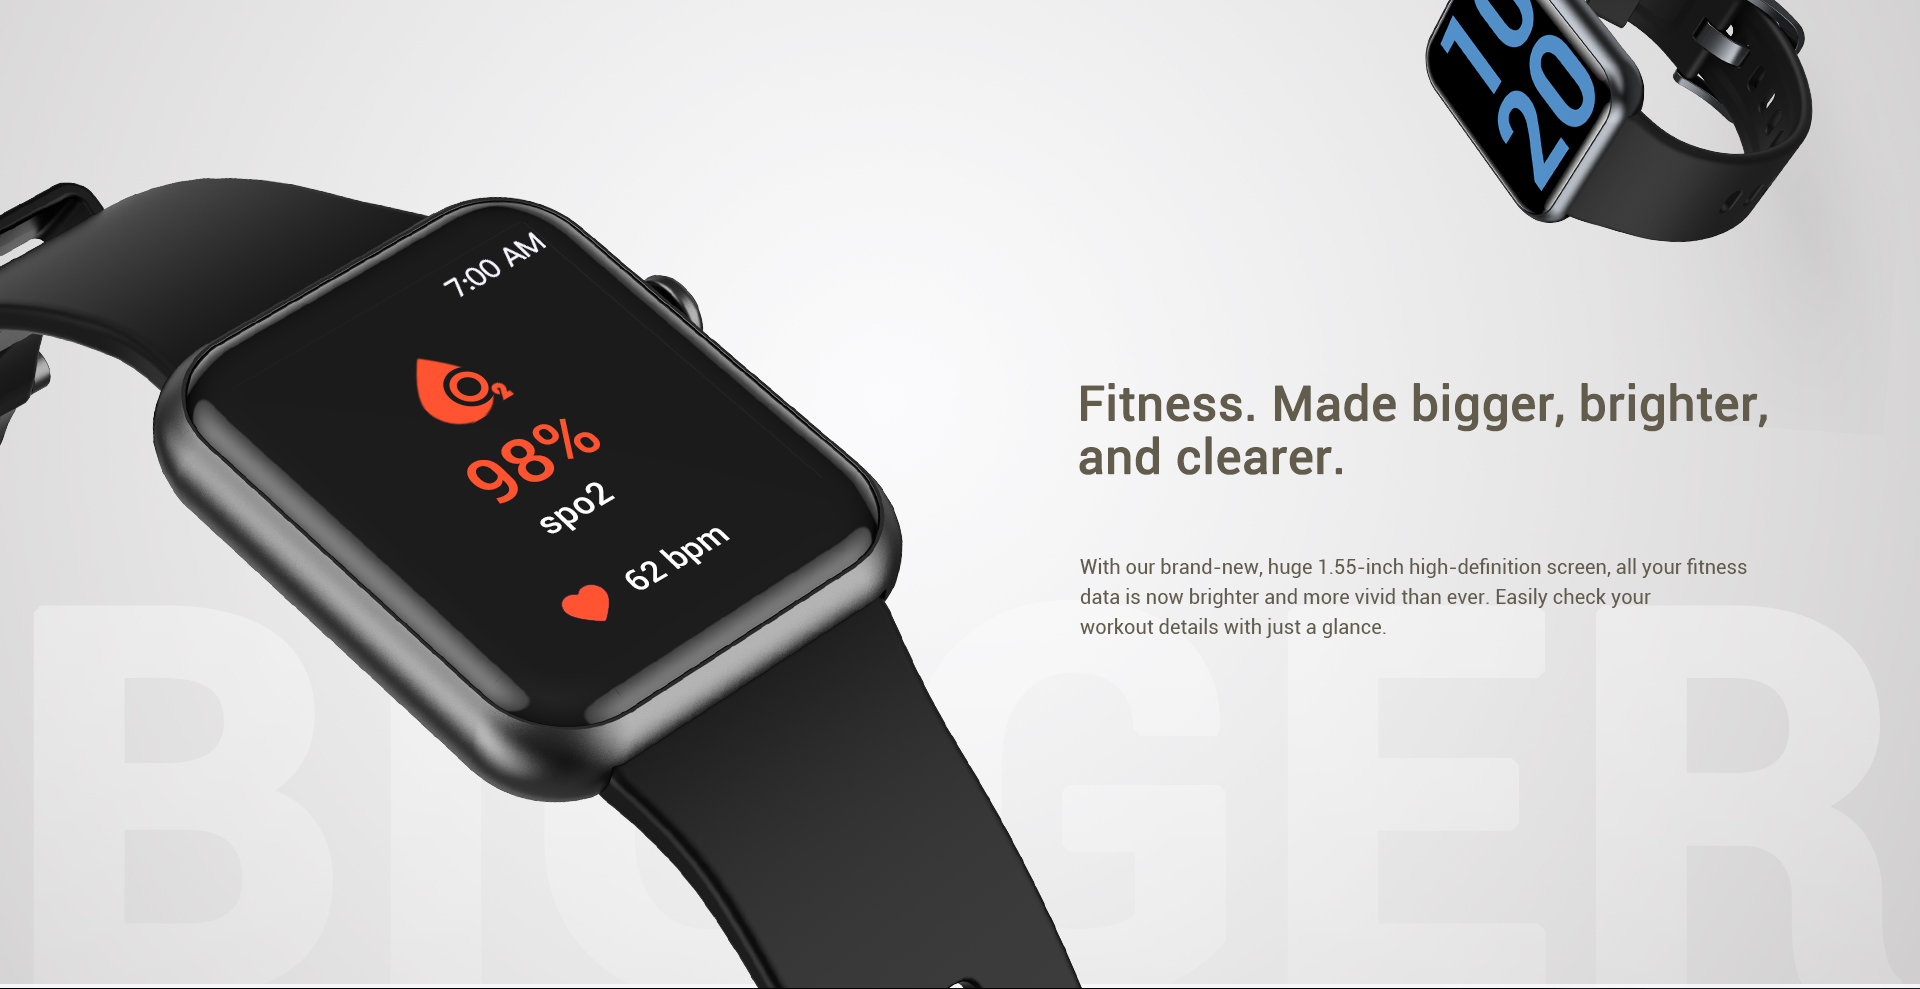 Letsfit IW2 smartwatch allows you to measure your Spo2 level with ease, giving you deeper insightsinto your fitness and health